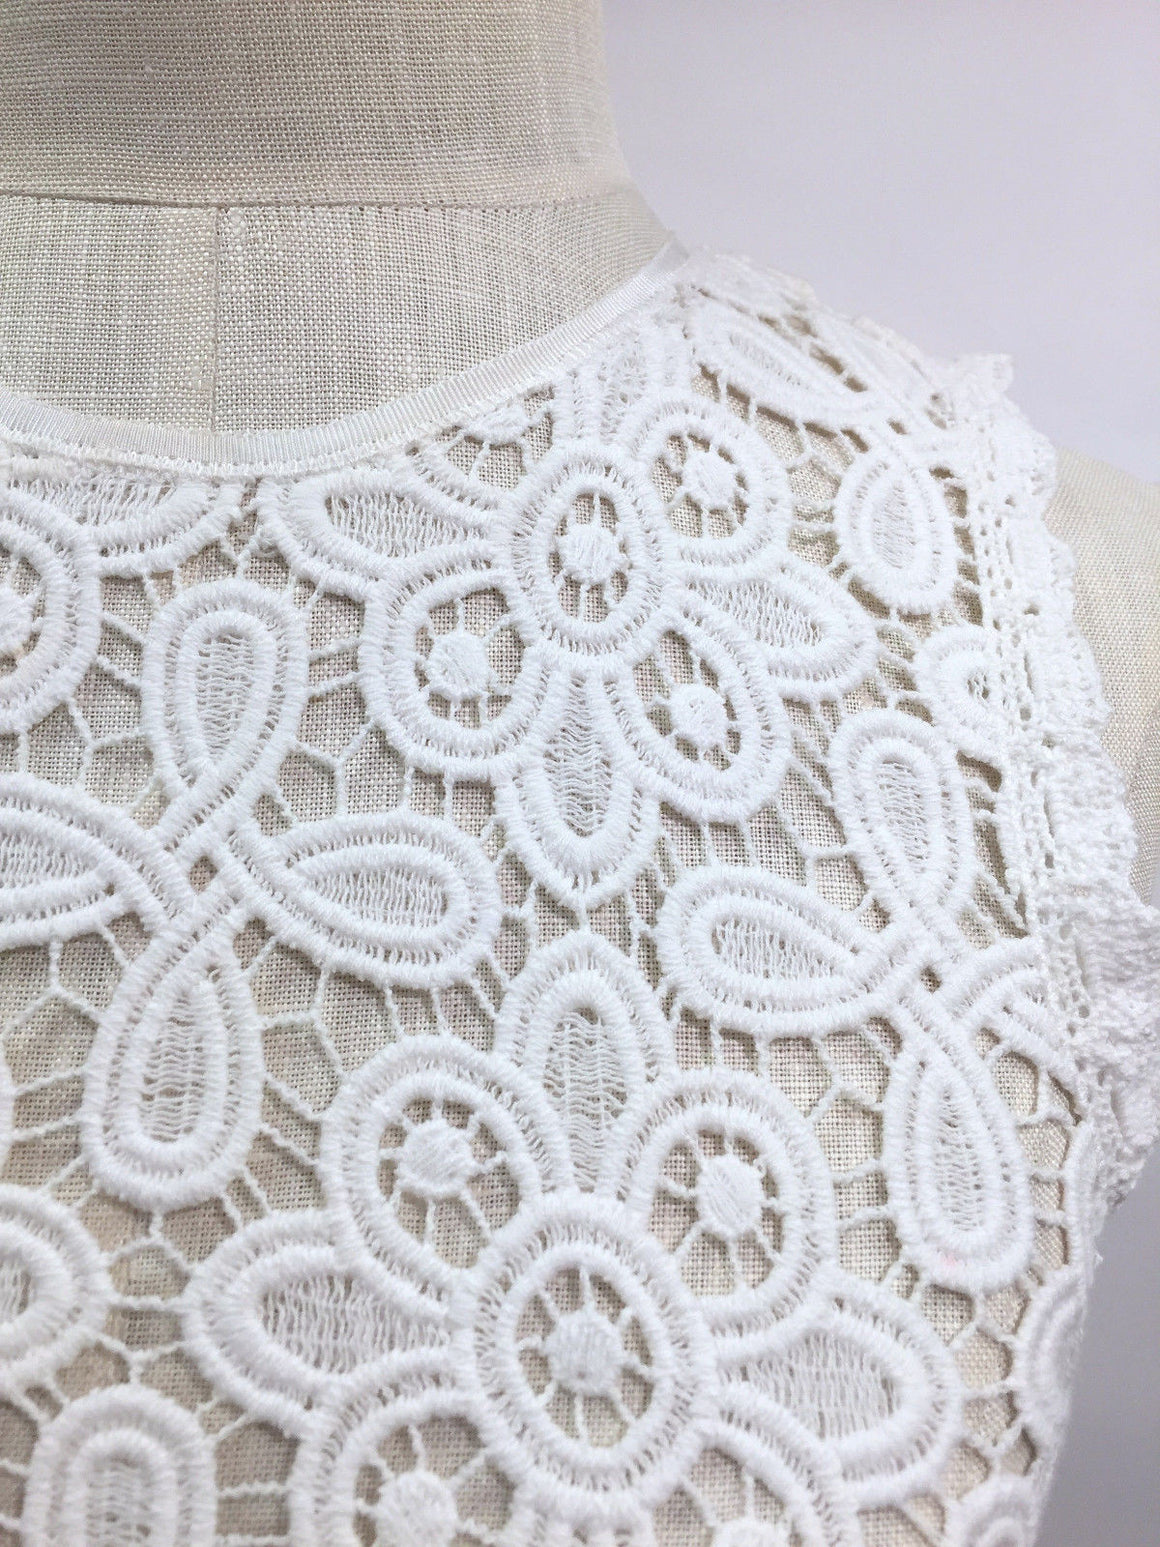 bisbiz.com INTERMIX   Ivory Cottom Floral Lace Sleeveless Peplum Blouse Top Size: Small - Bis Luxury Resale